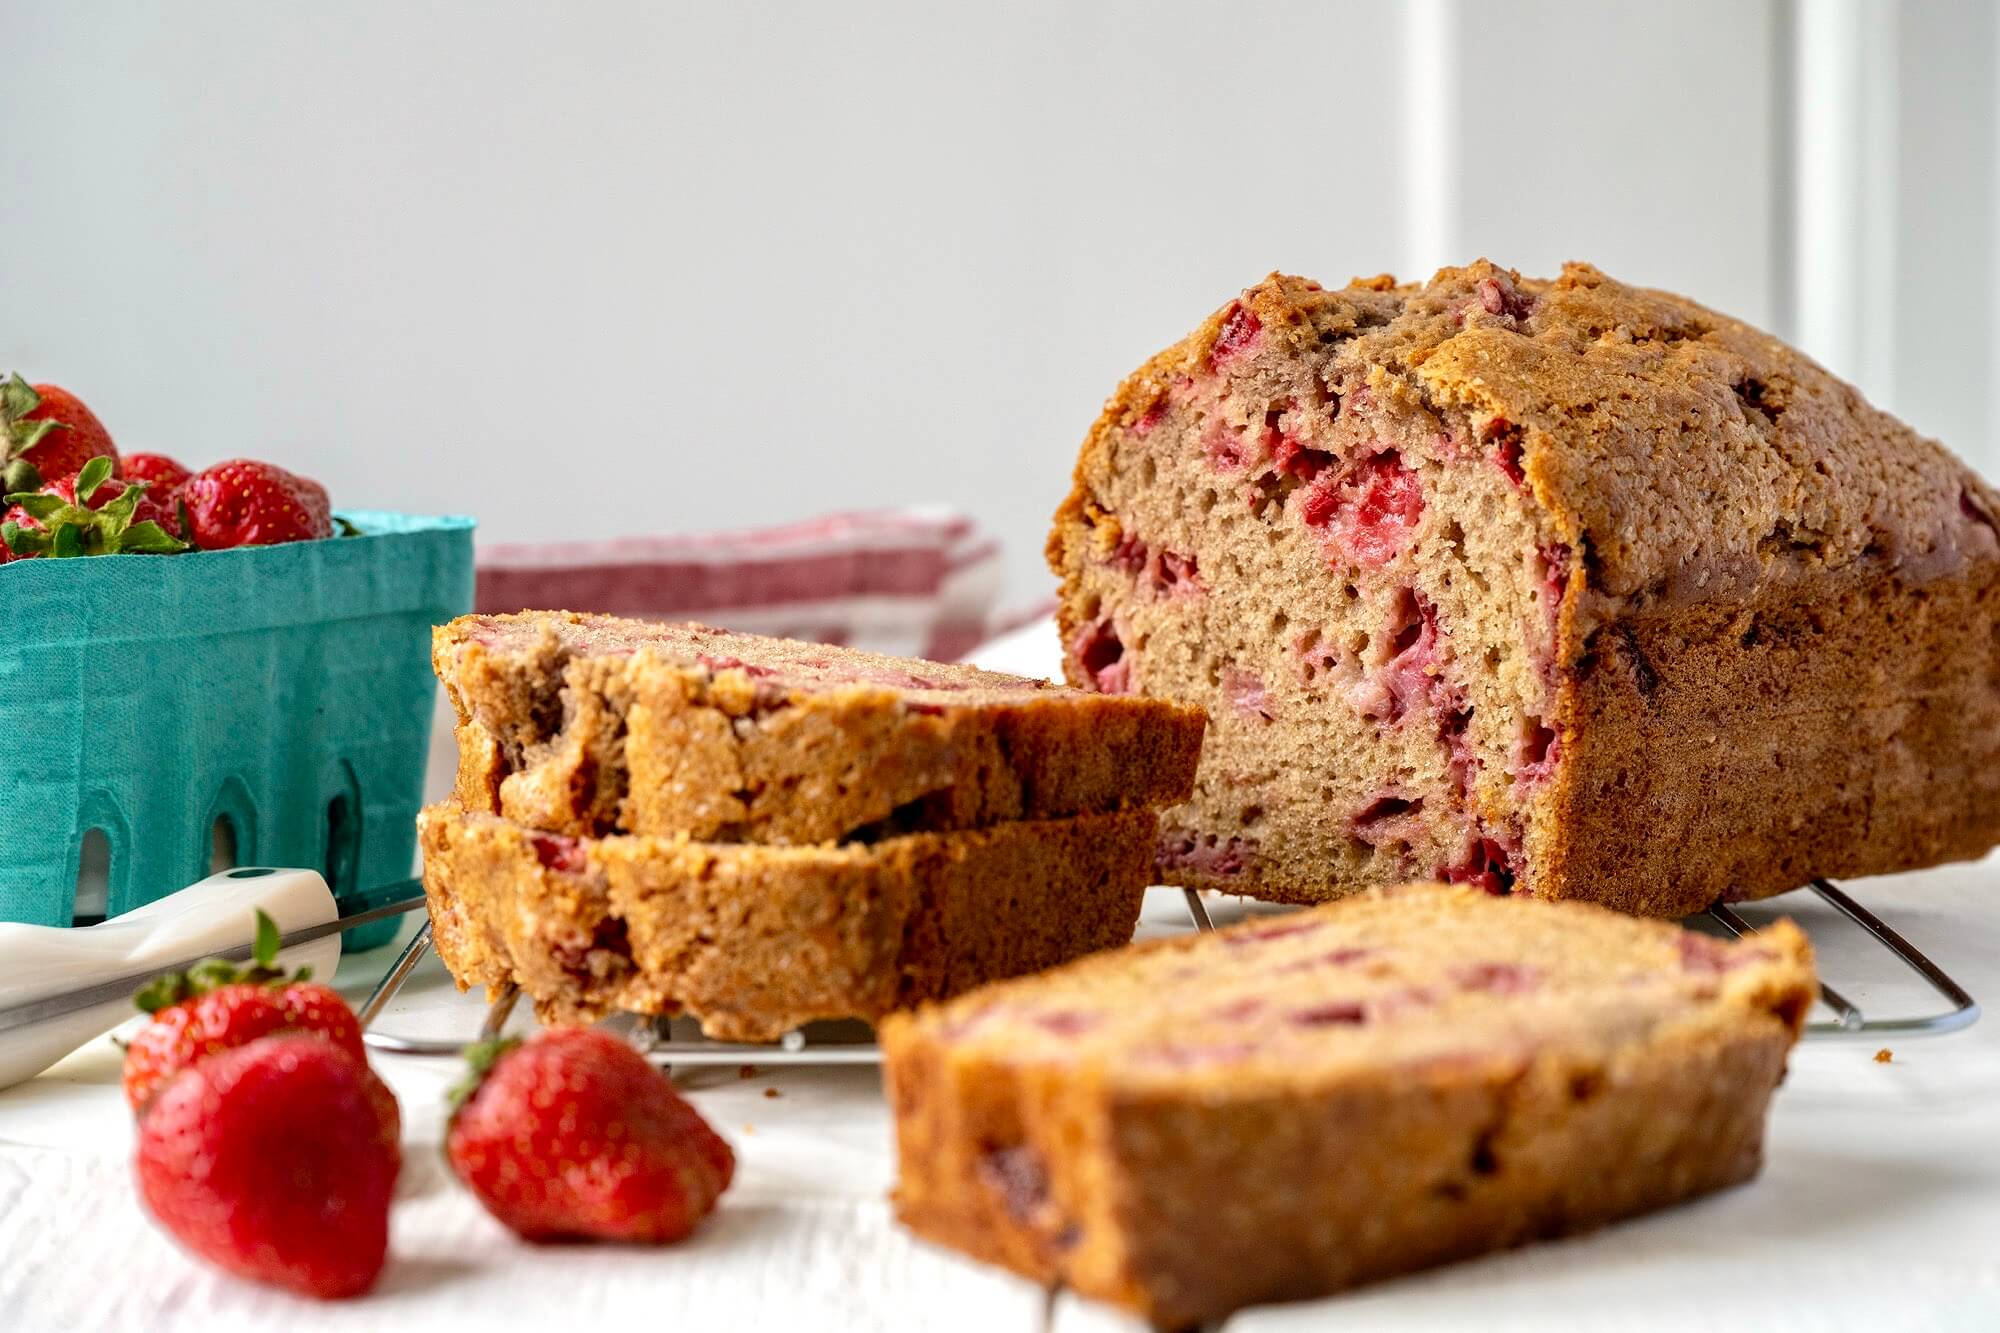 This generously sized quick bread is lightly sweet with a delicate crumb and may just become a seasonal favorite!